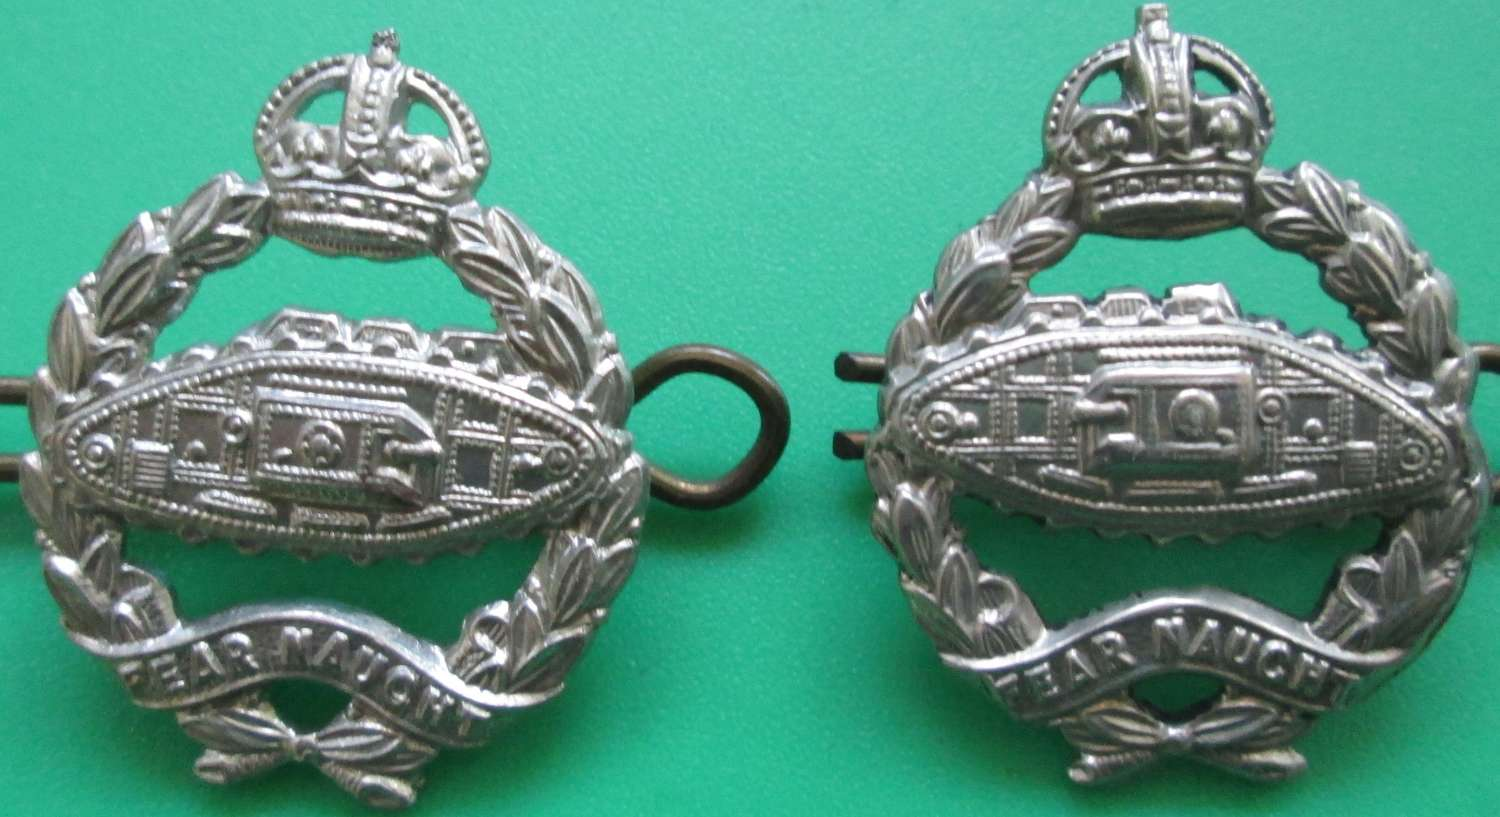 A PAIR OF ROYAL TANK CORPS COLLAR DOGS